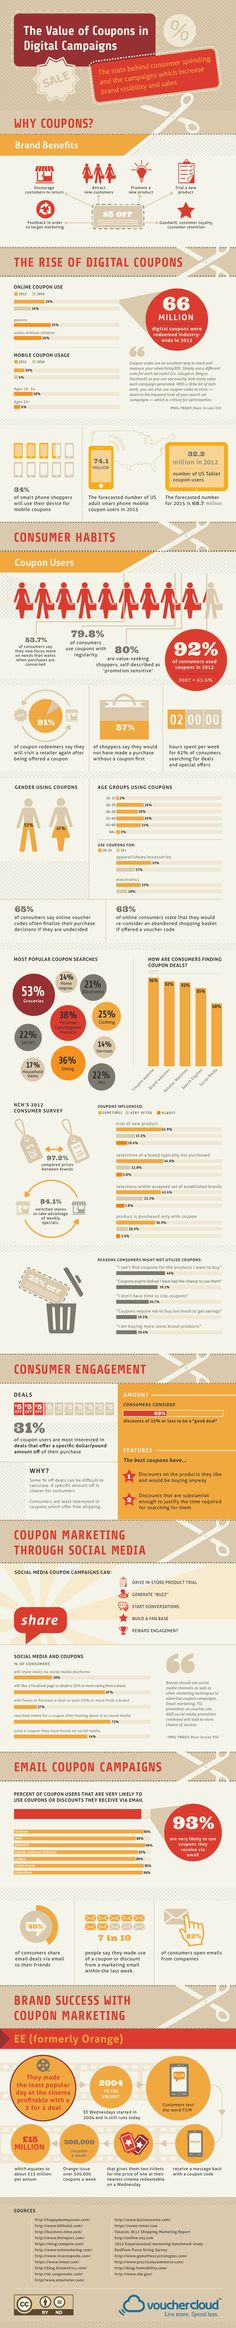 Digital Coupons Drive Sales [Infographic]